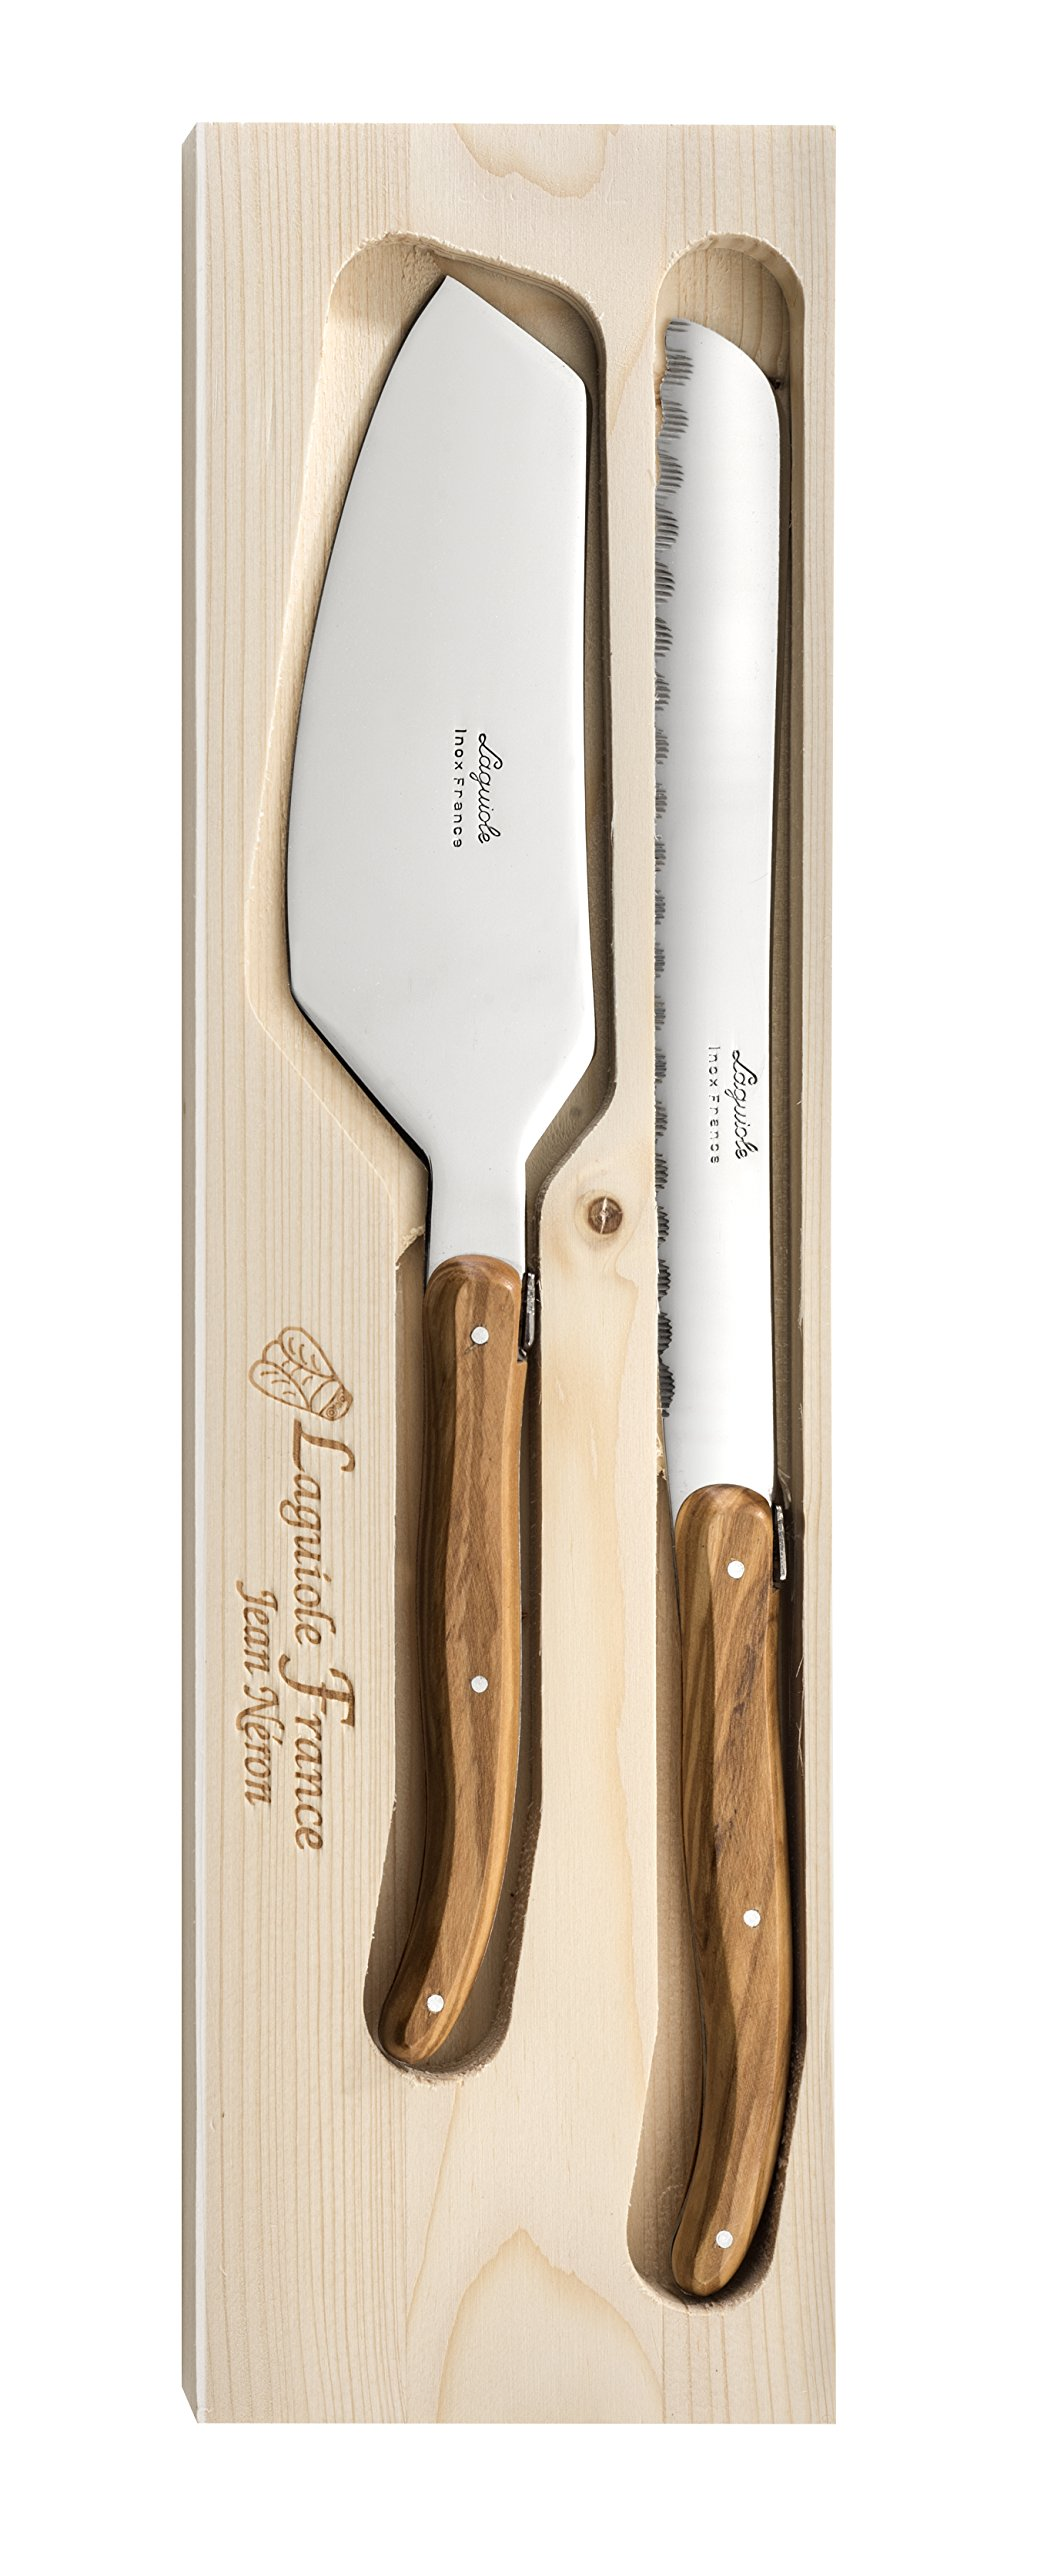 Neron Coutellerie 2 Piece Laguiole Cake Knife Set With Olive Wood Handle In Wooden Box, Silver